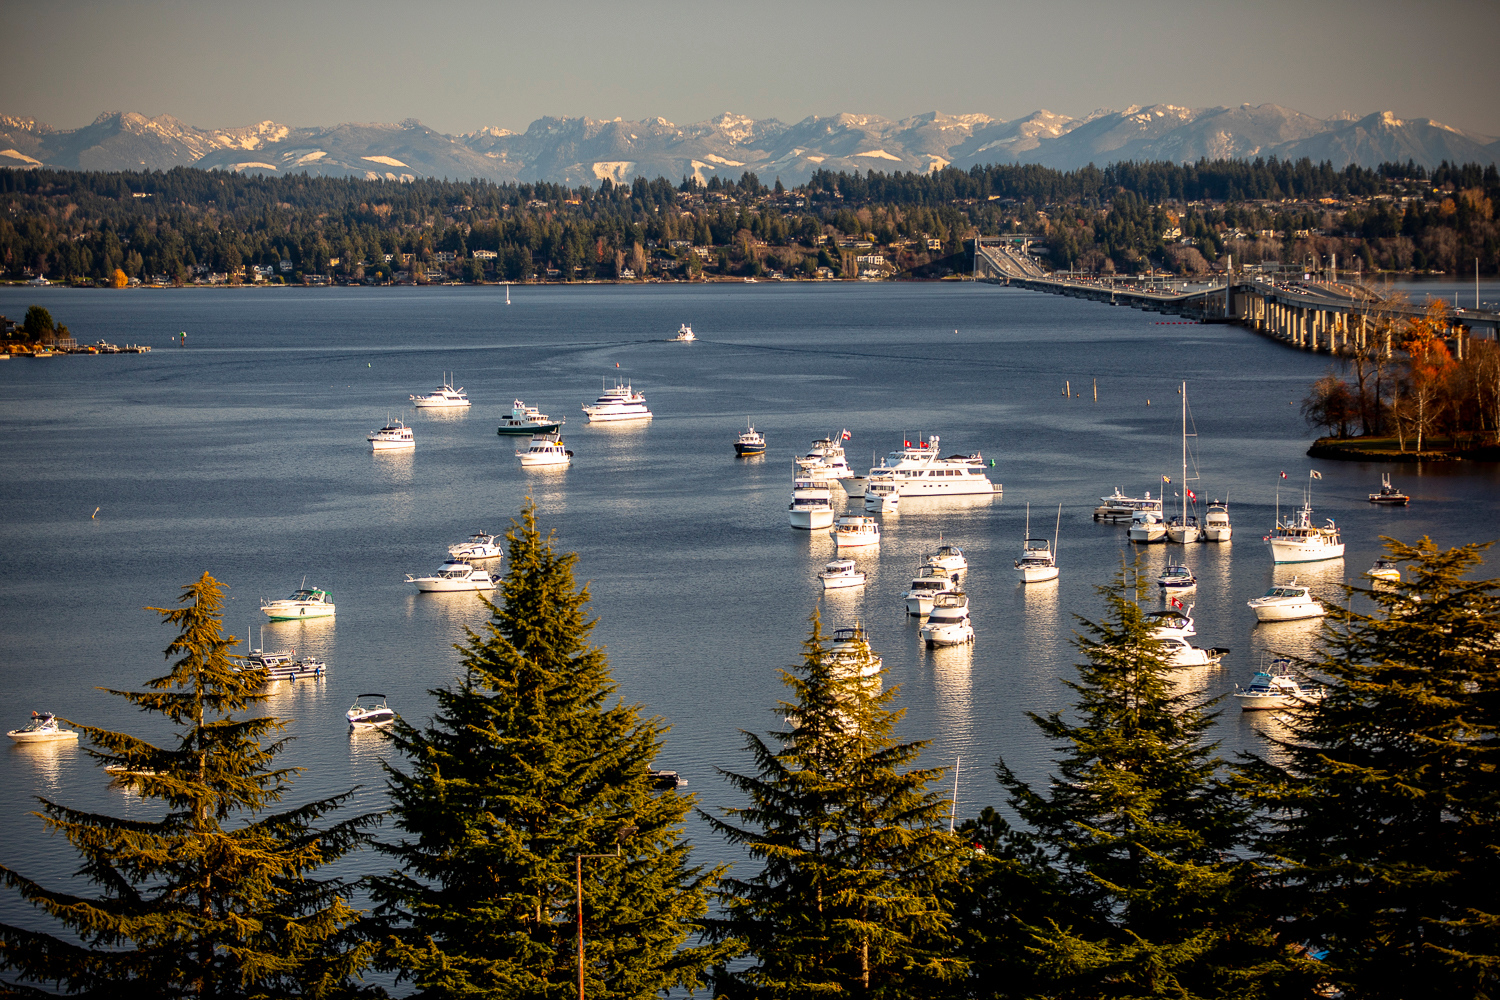 PICTURE PERFECT, With 200 miles of shoreline and 400 city parks, you'll never run out of spots to explore.